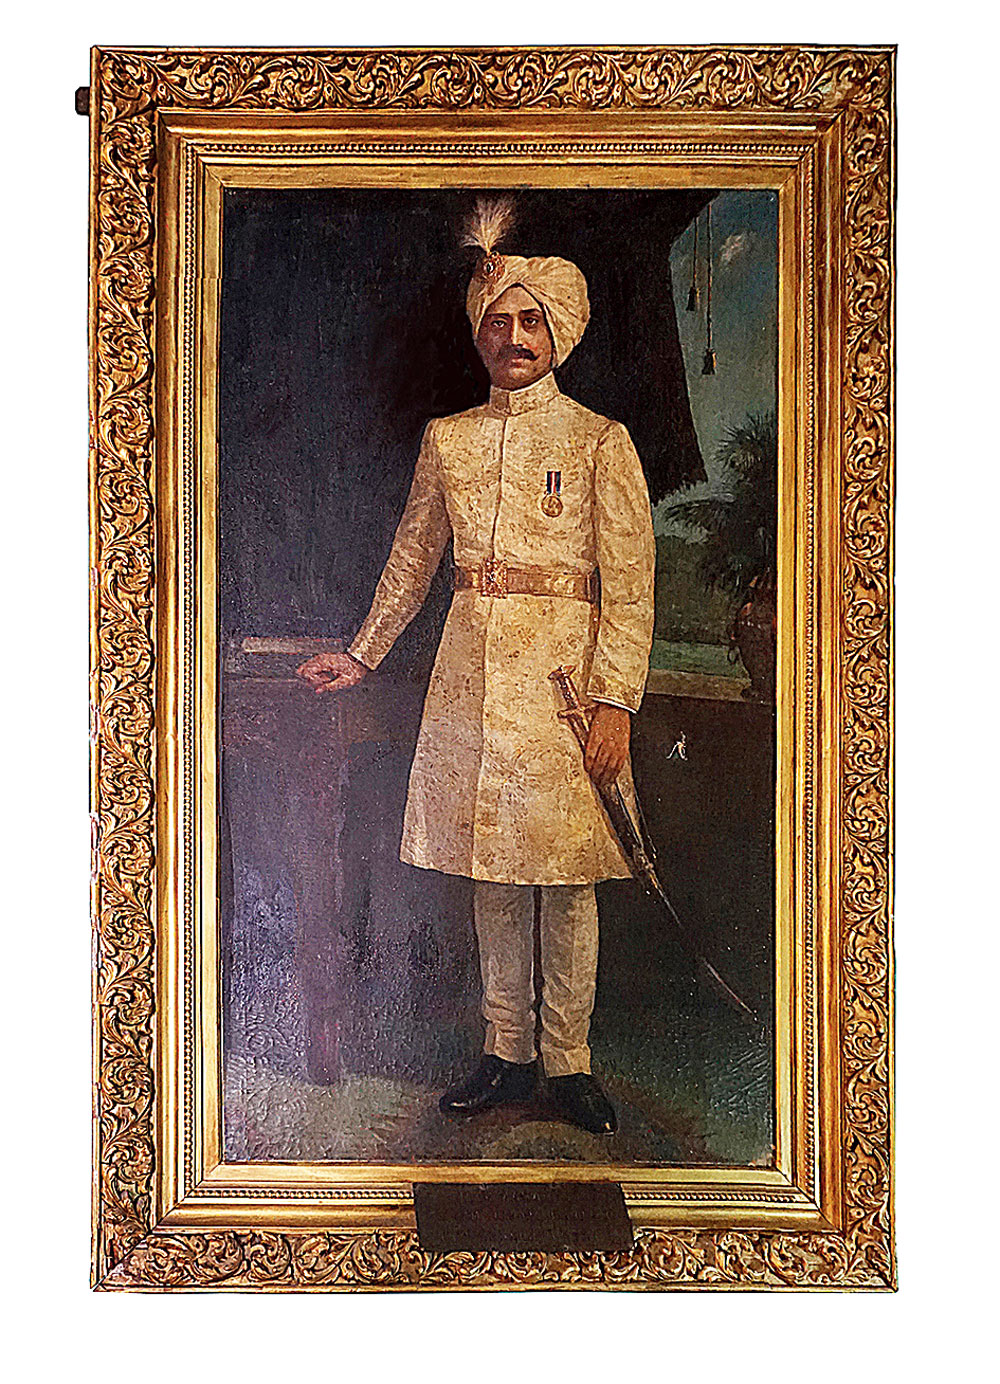 An oil painting of Sriram Chandra Bhanj Deo that adorns the palace walls along with spoils from the countless royal hunting expeditions